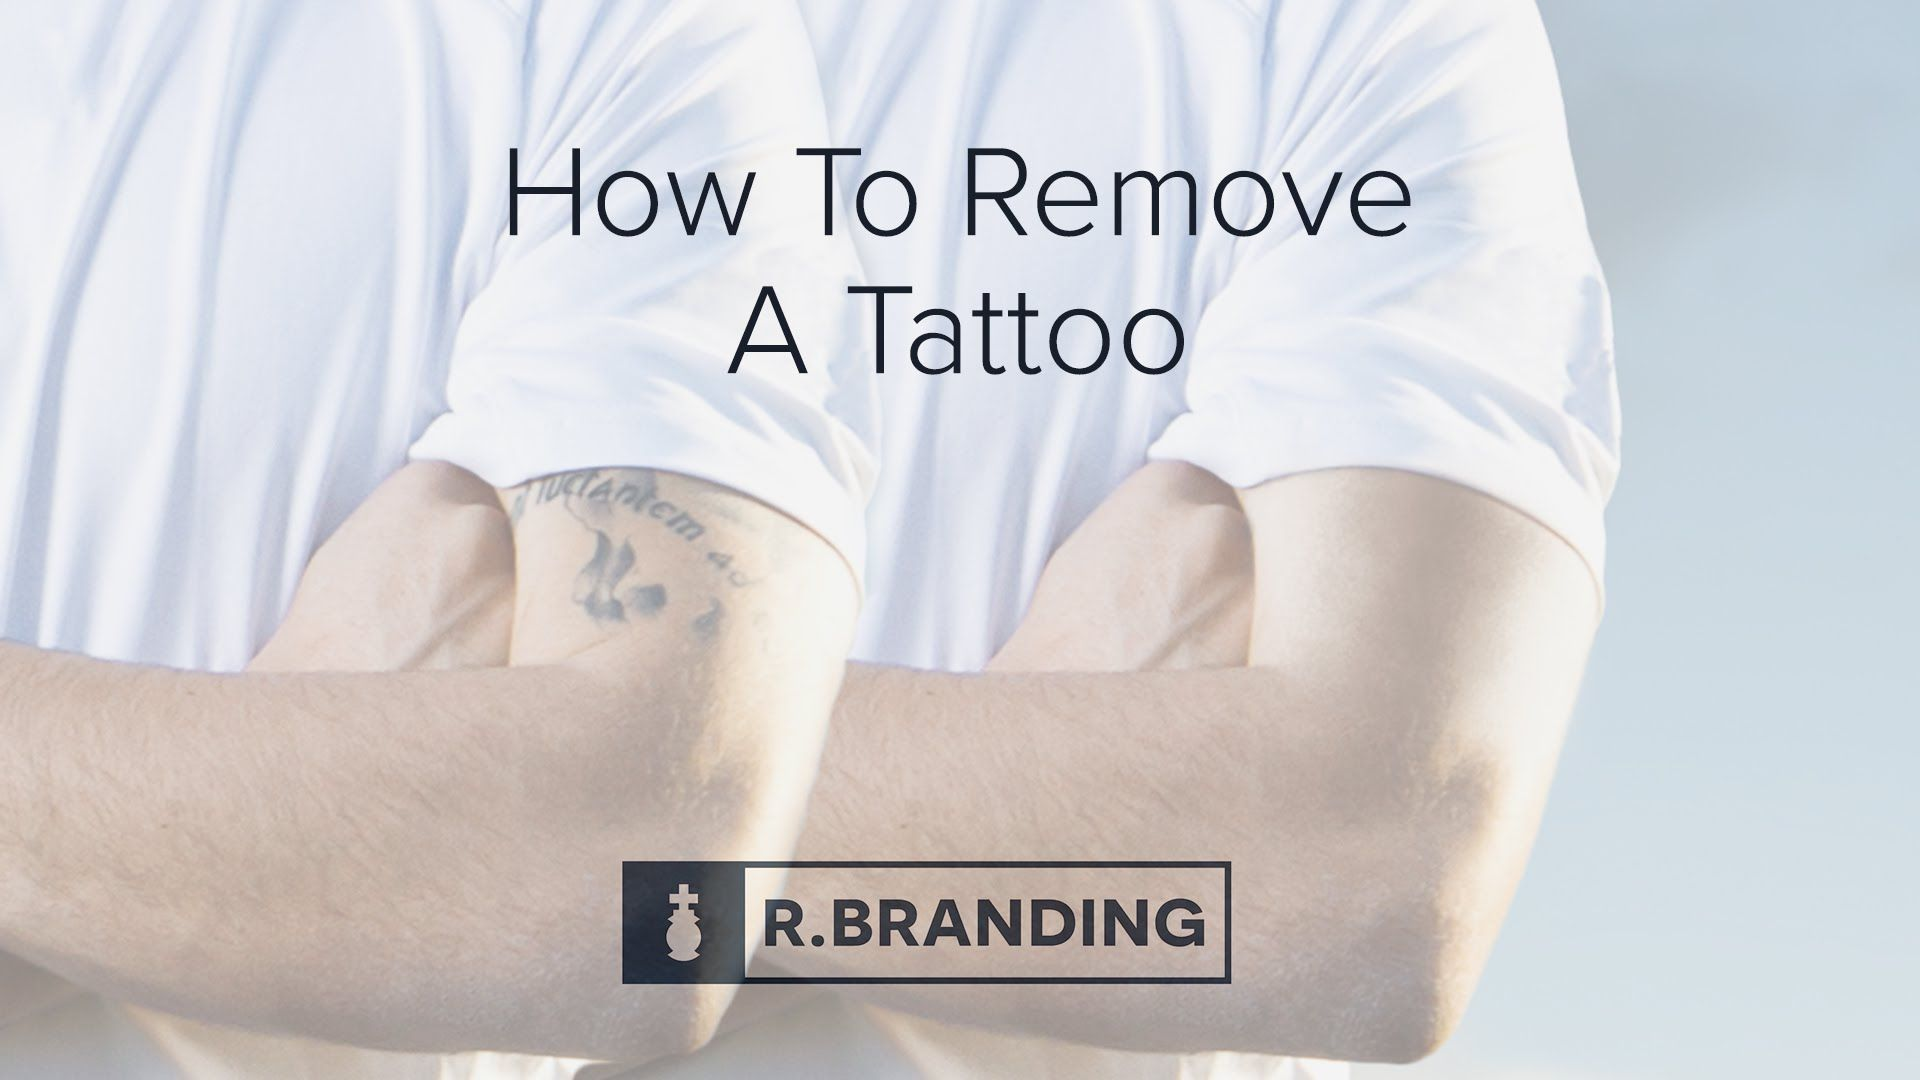 How to remove a tattoo using r branding how